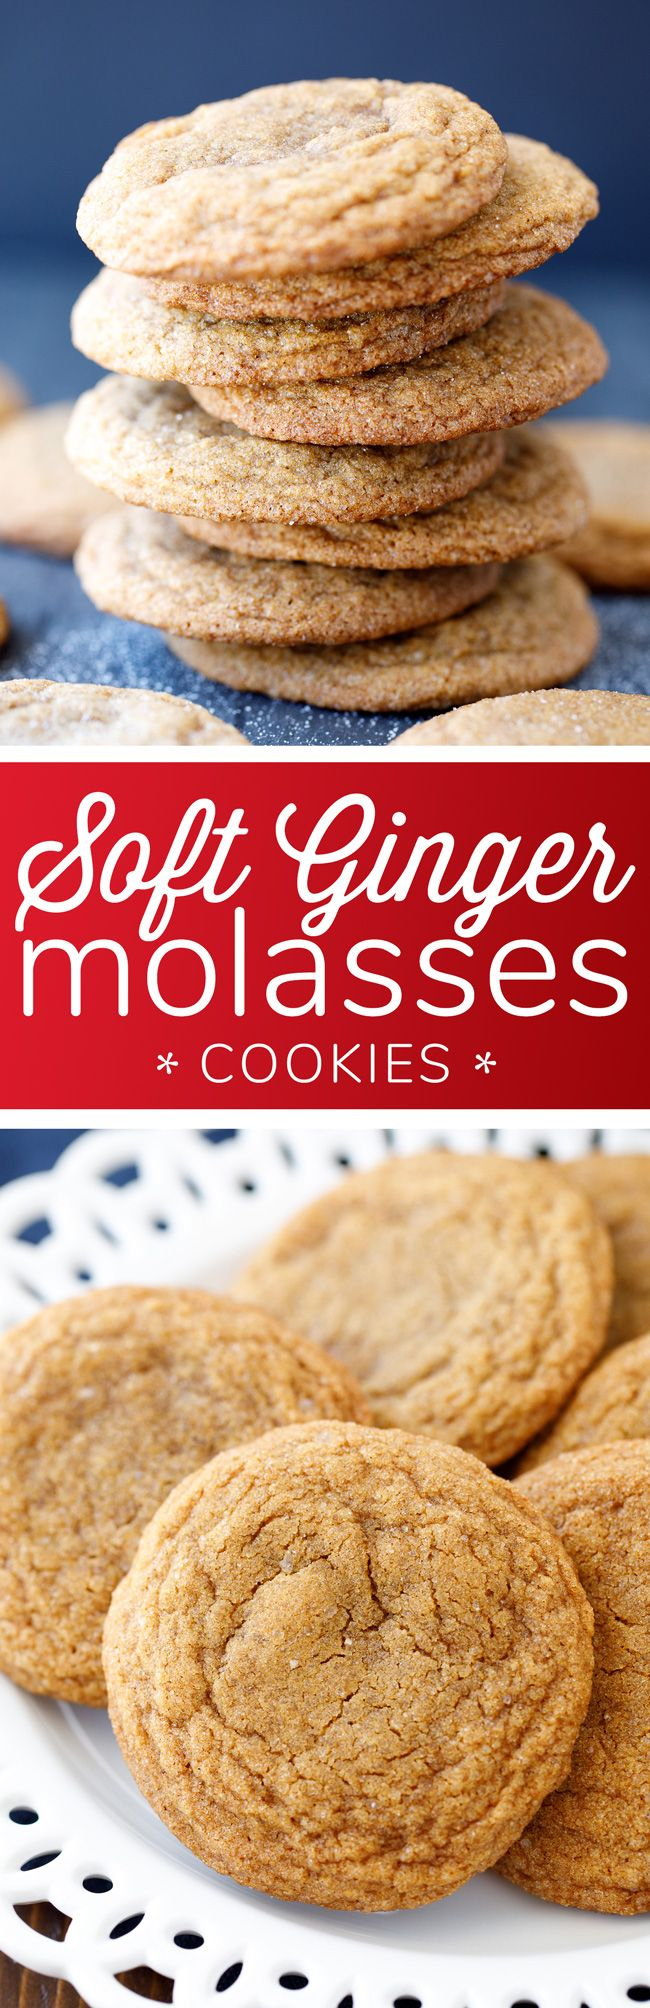 Soft Ginger Molasses Cookies Recipe - These melt-in-your-mouth ginger cookies are big, soft and delicious.